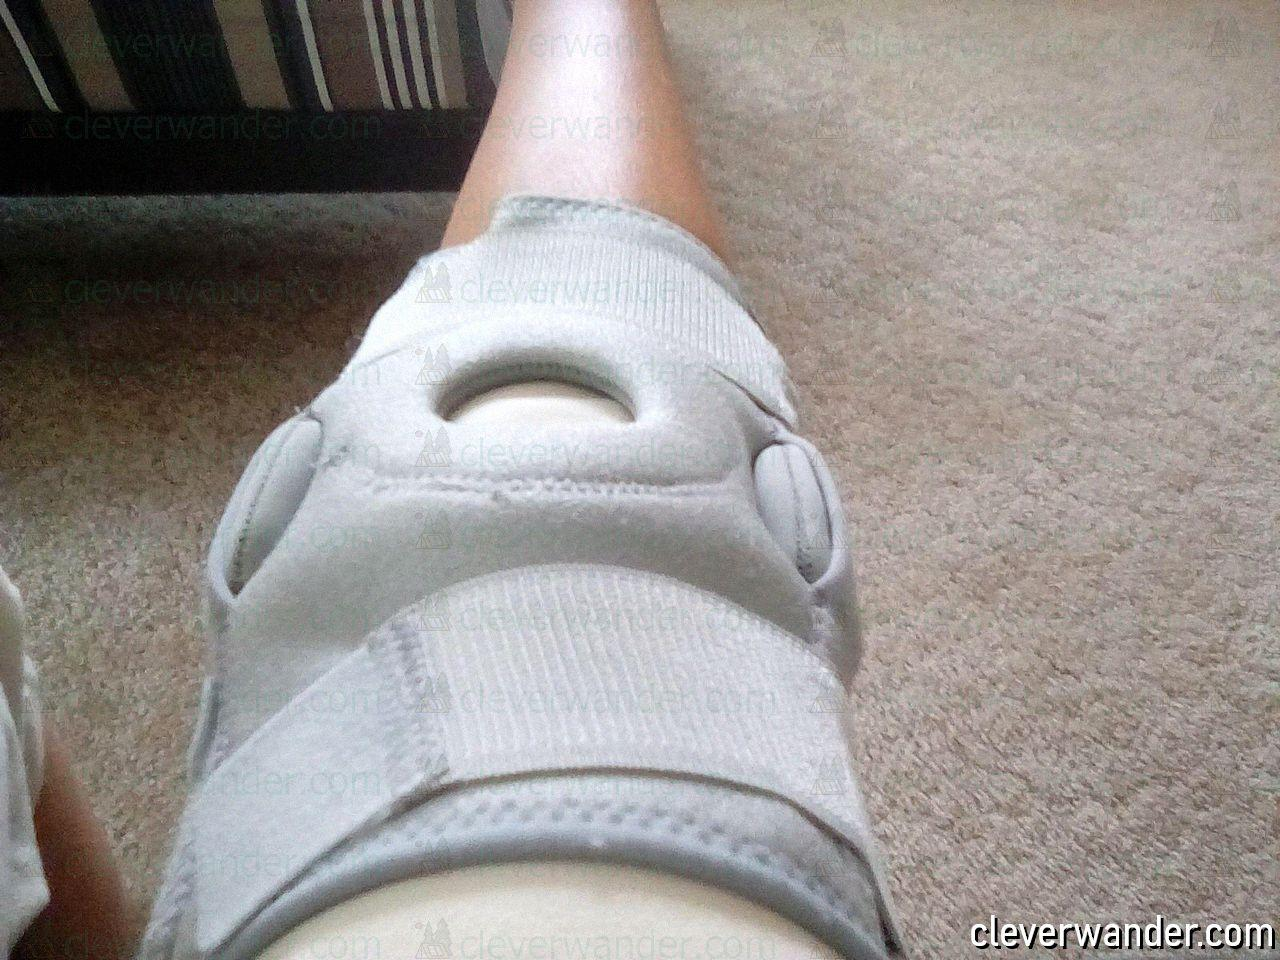 Vive Hinged Knee Brace - image review 3